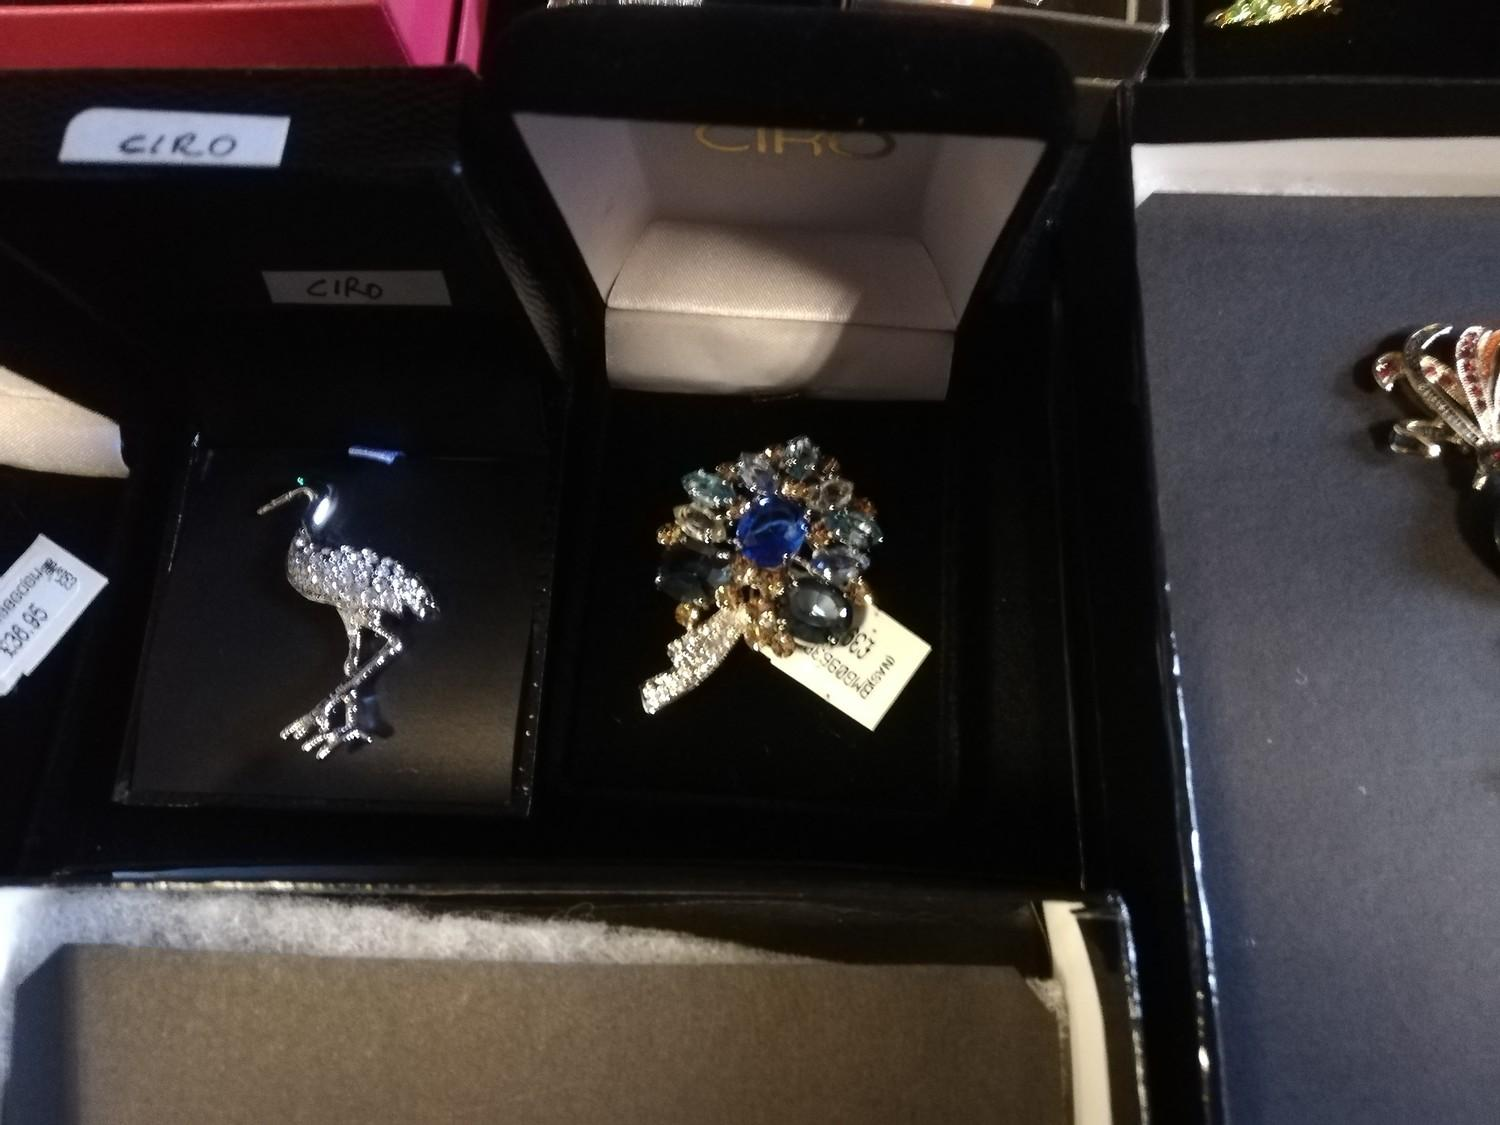 Collection of Ciro brooches inc pig, beehive with bees, cow, birds & turtle + 2 empty bags - Image 7 of 11